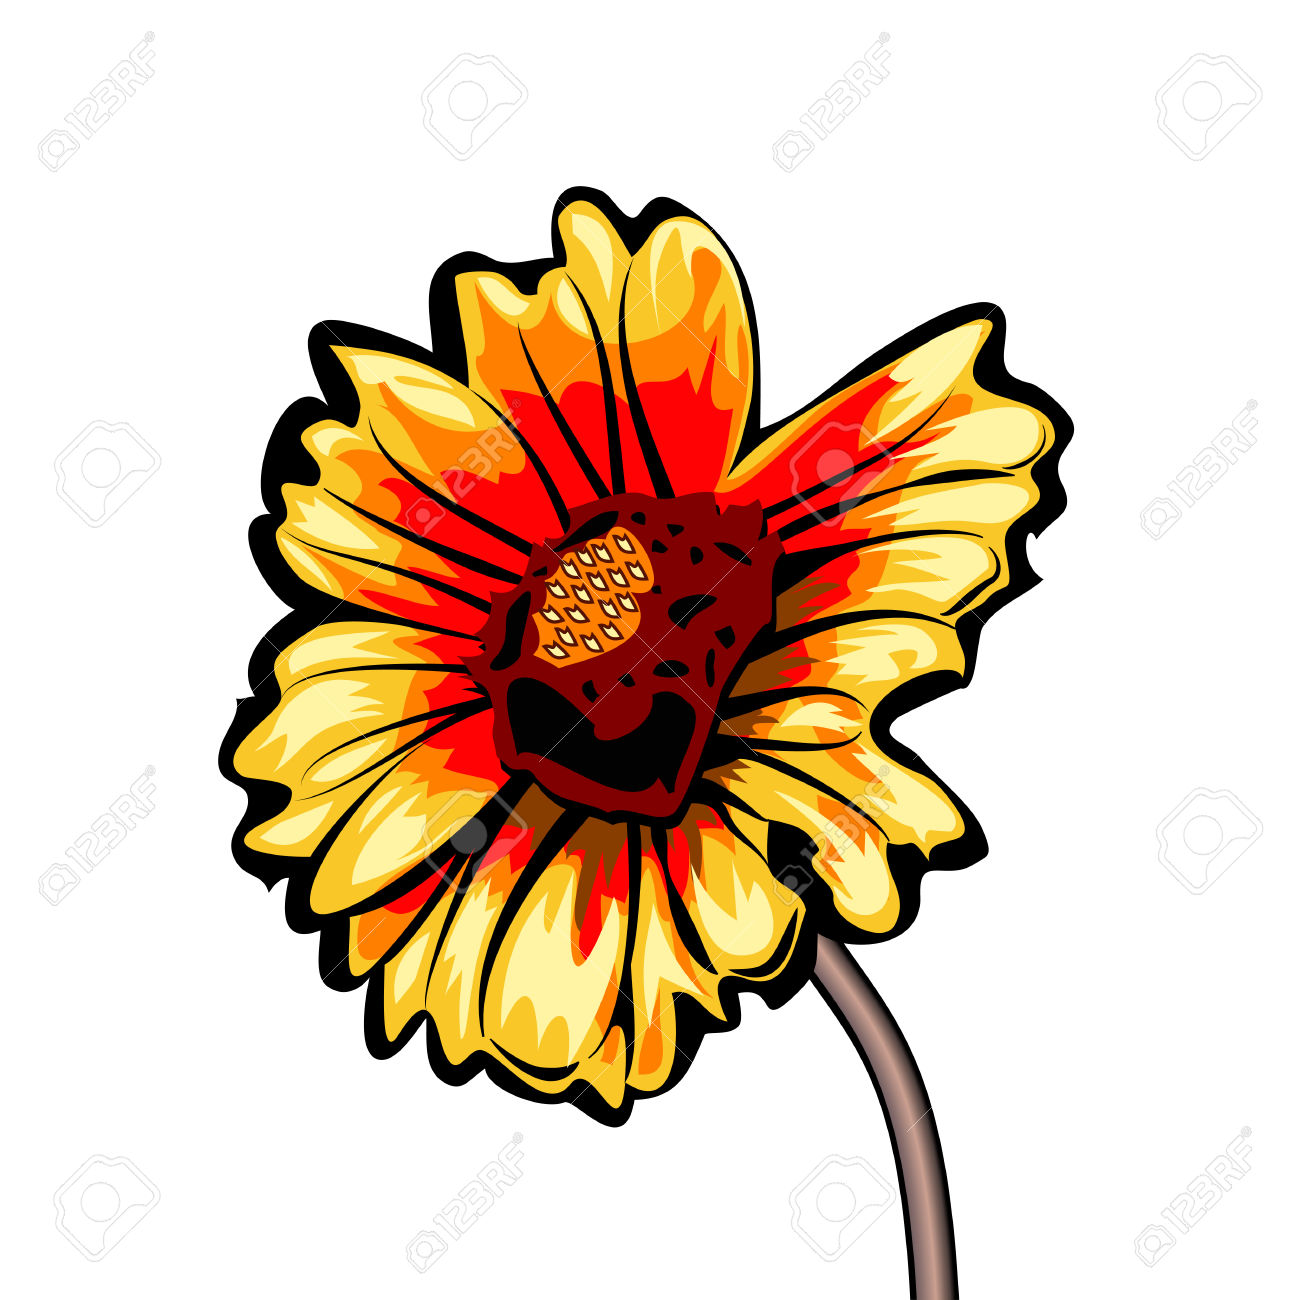 Gaillardia Orcommon Name Blanket Flower Is A Famous Flower Of.